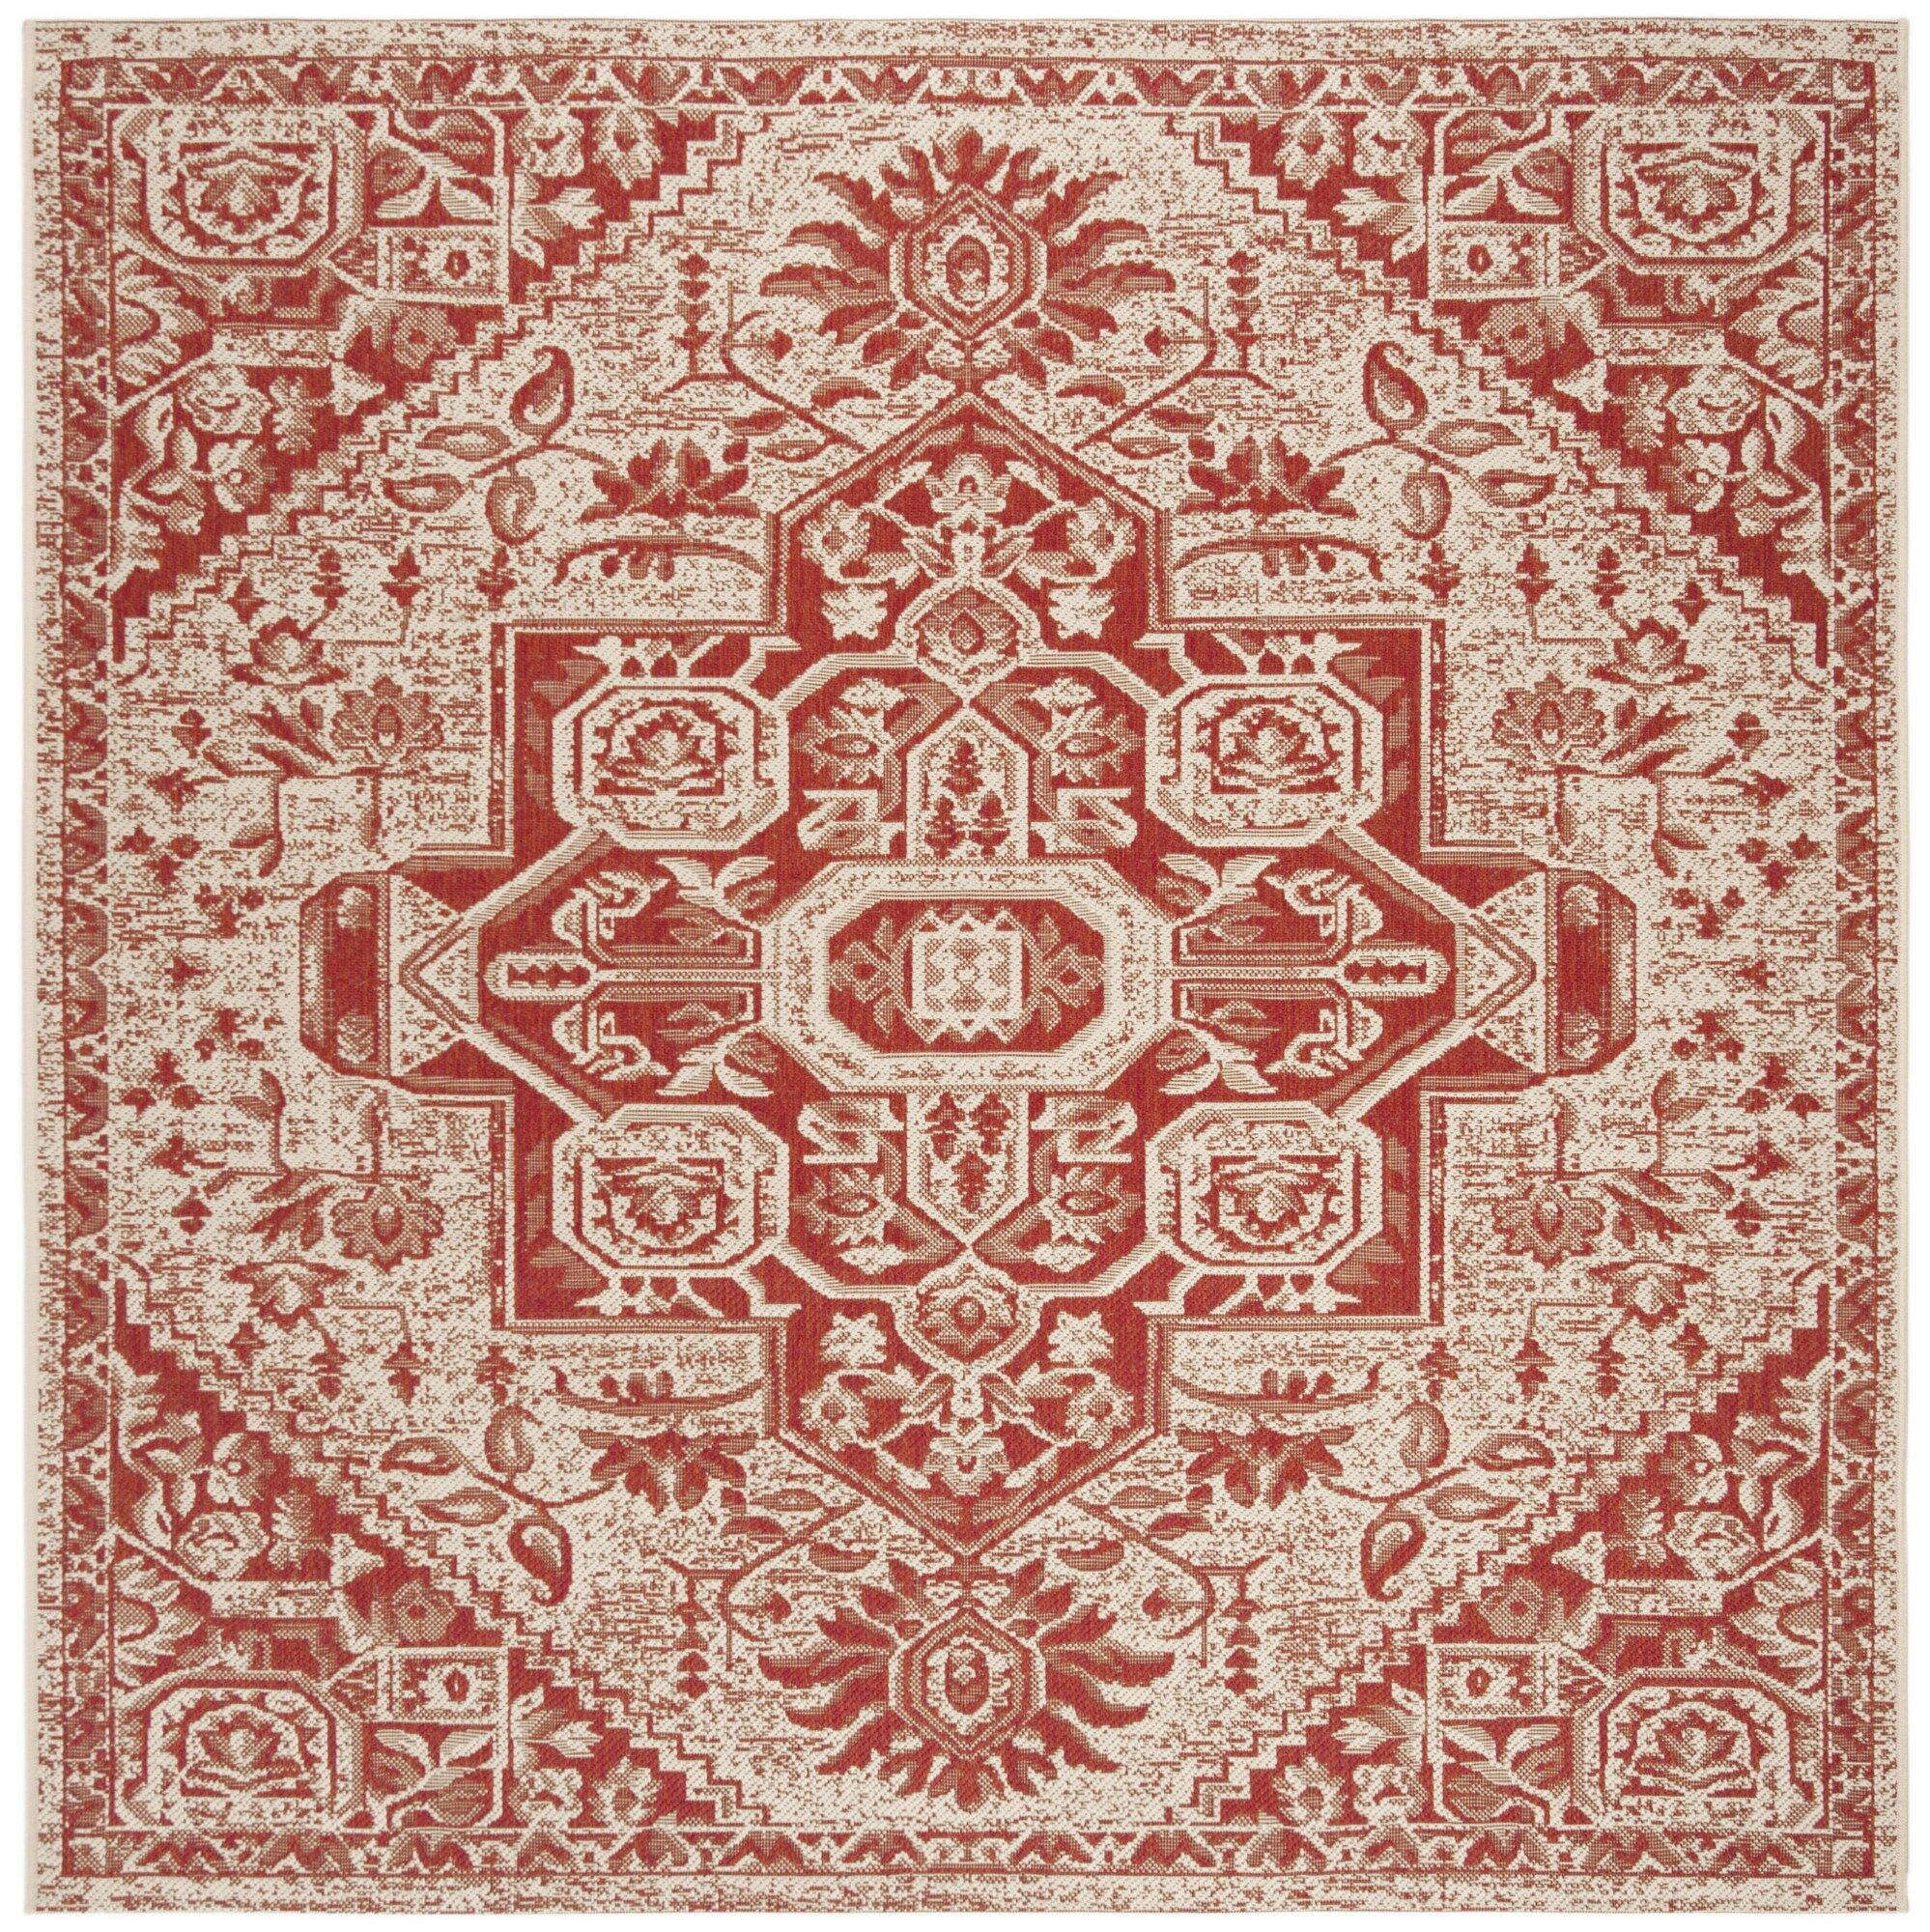 Hoover Cream/Red Area Rug Rug Size: Square 6'7